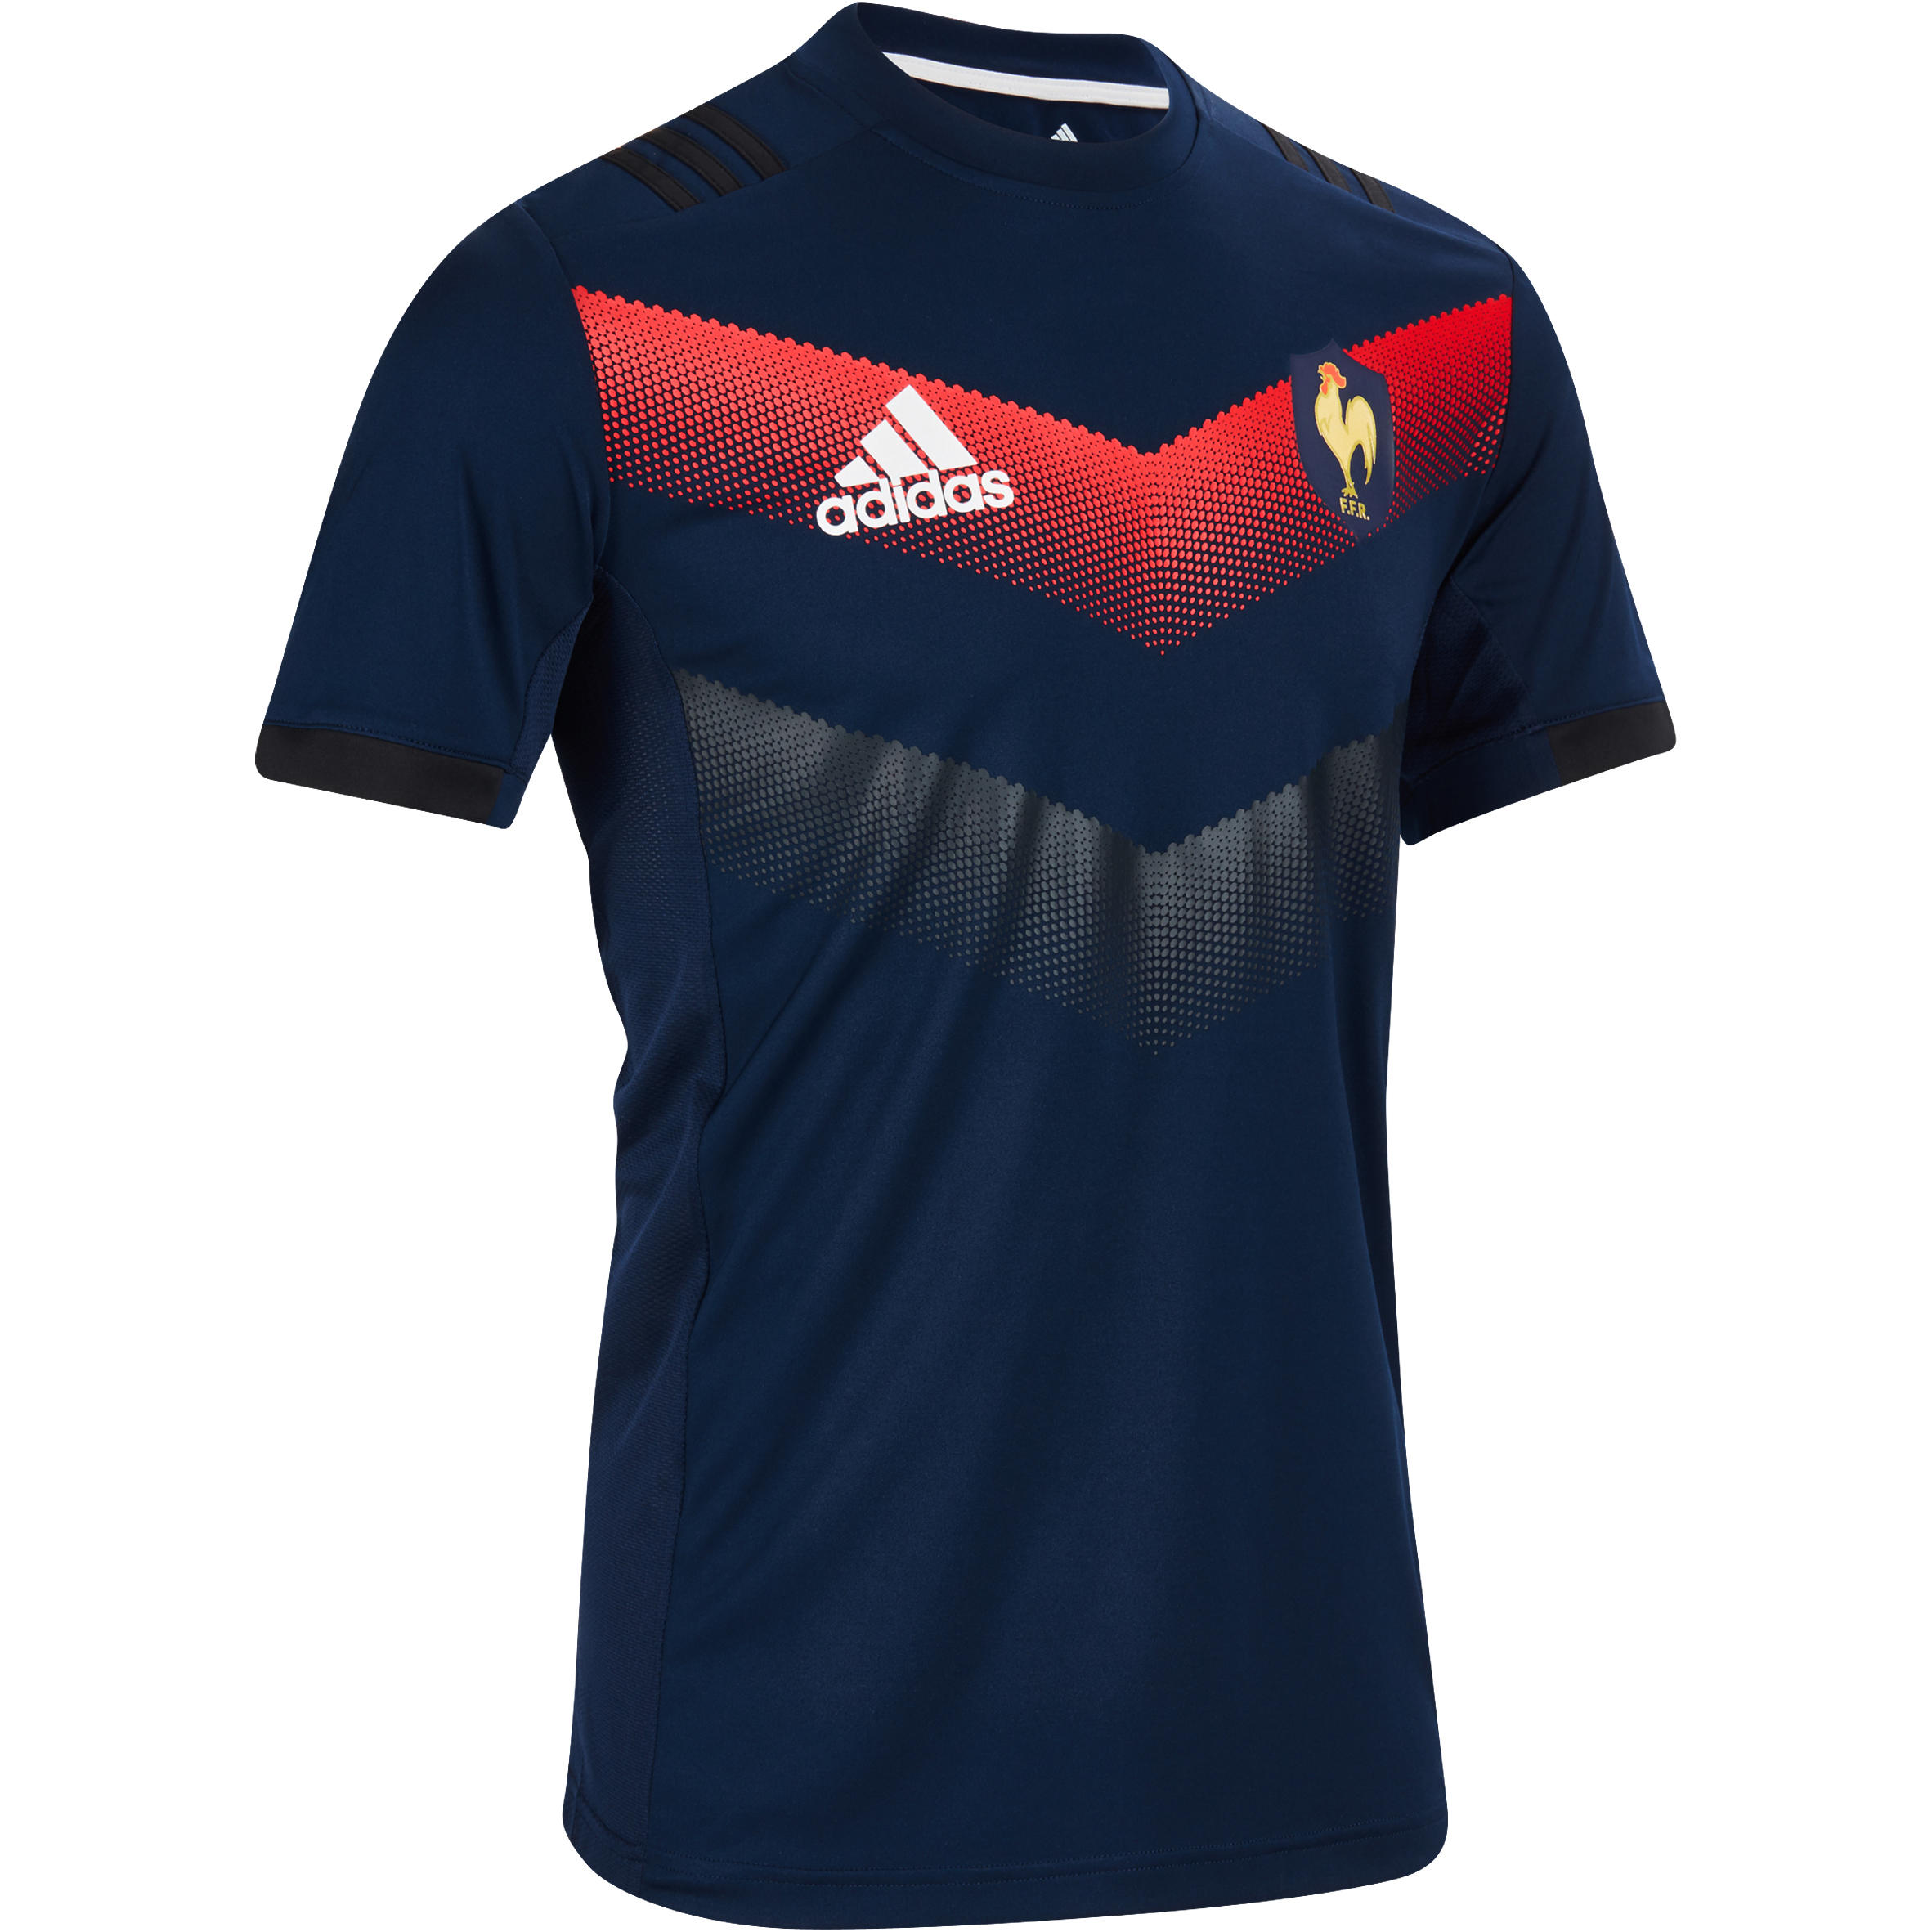 Adidas Performance rugby T-shirt Frankrijk 17-18